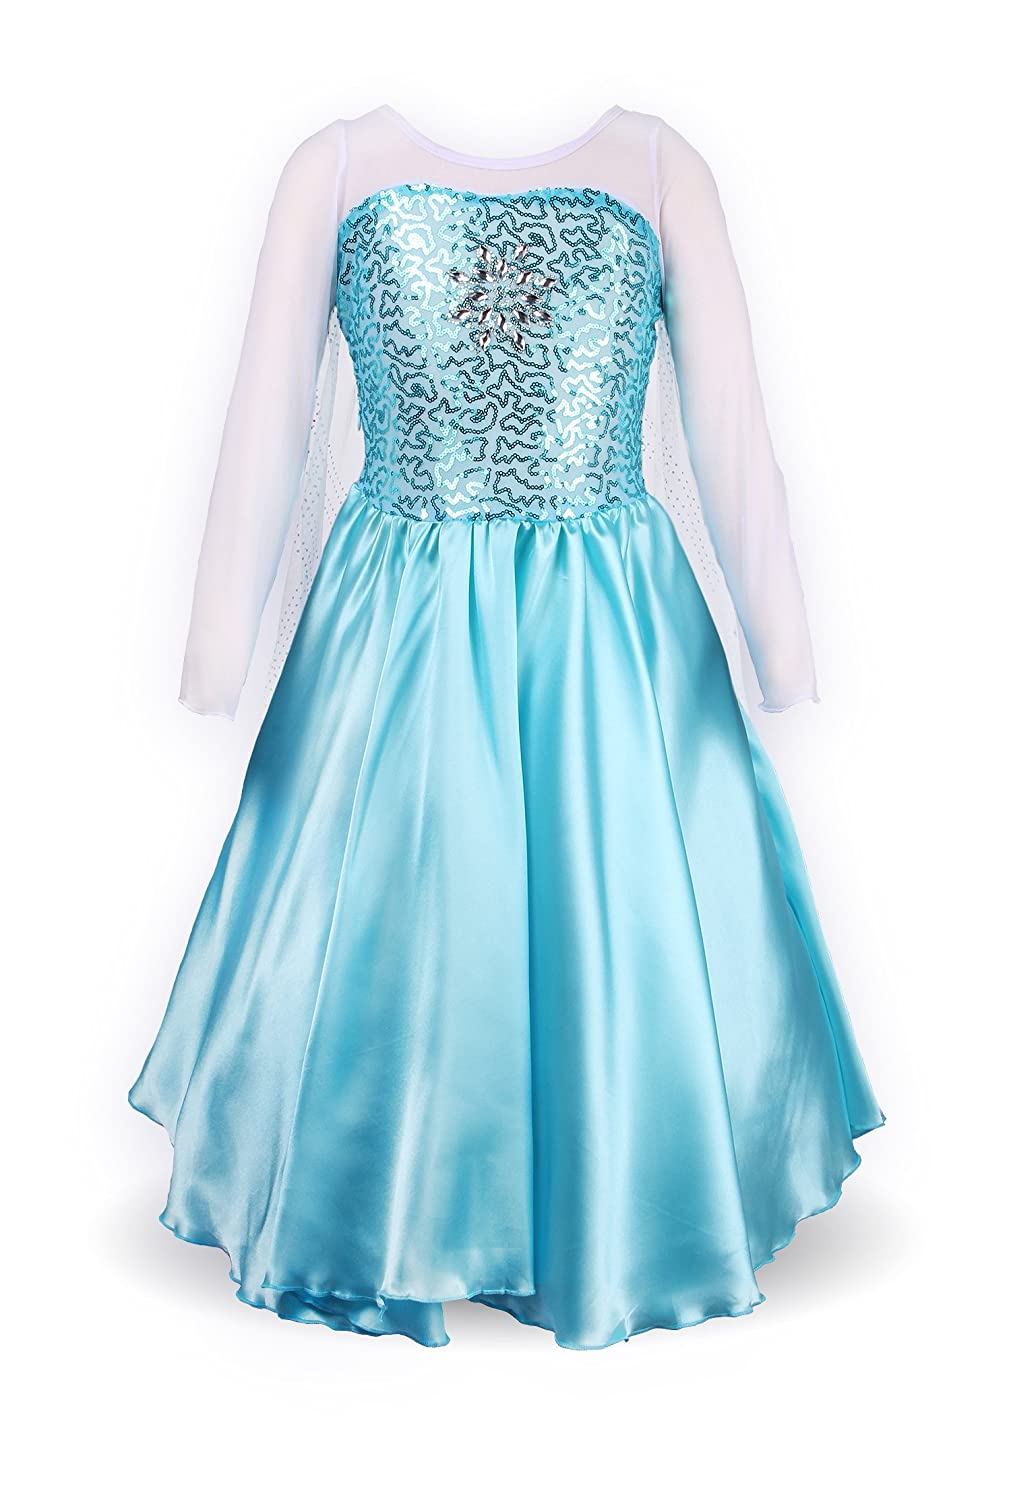 Buy ReliBeauty Girls Princess Elsa Fancy Dress Costume (5, Sky Blue ...